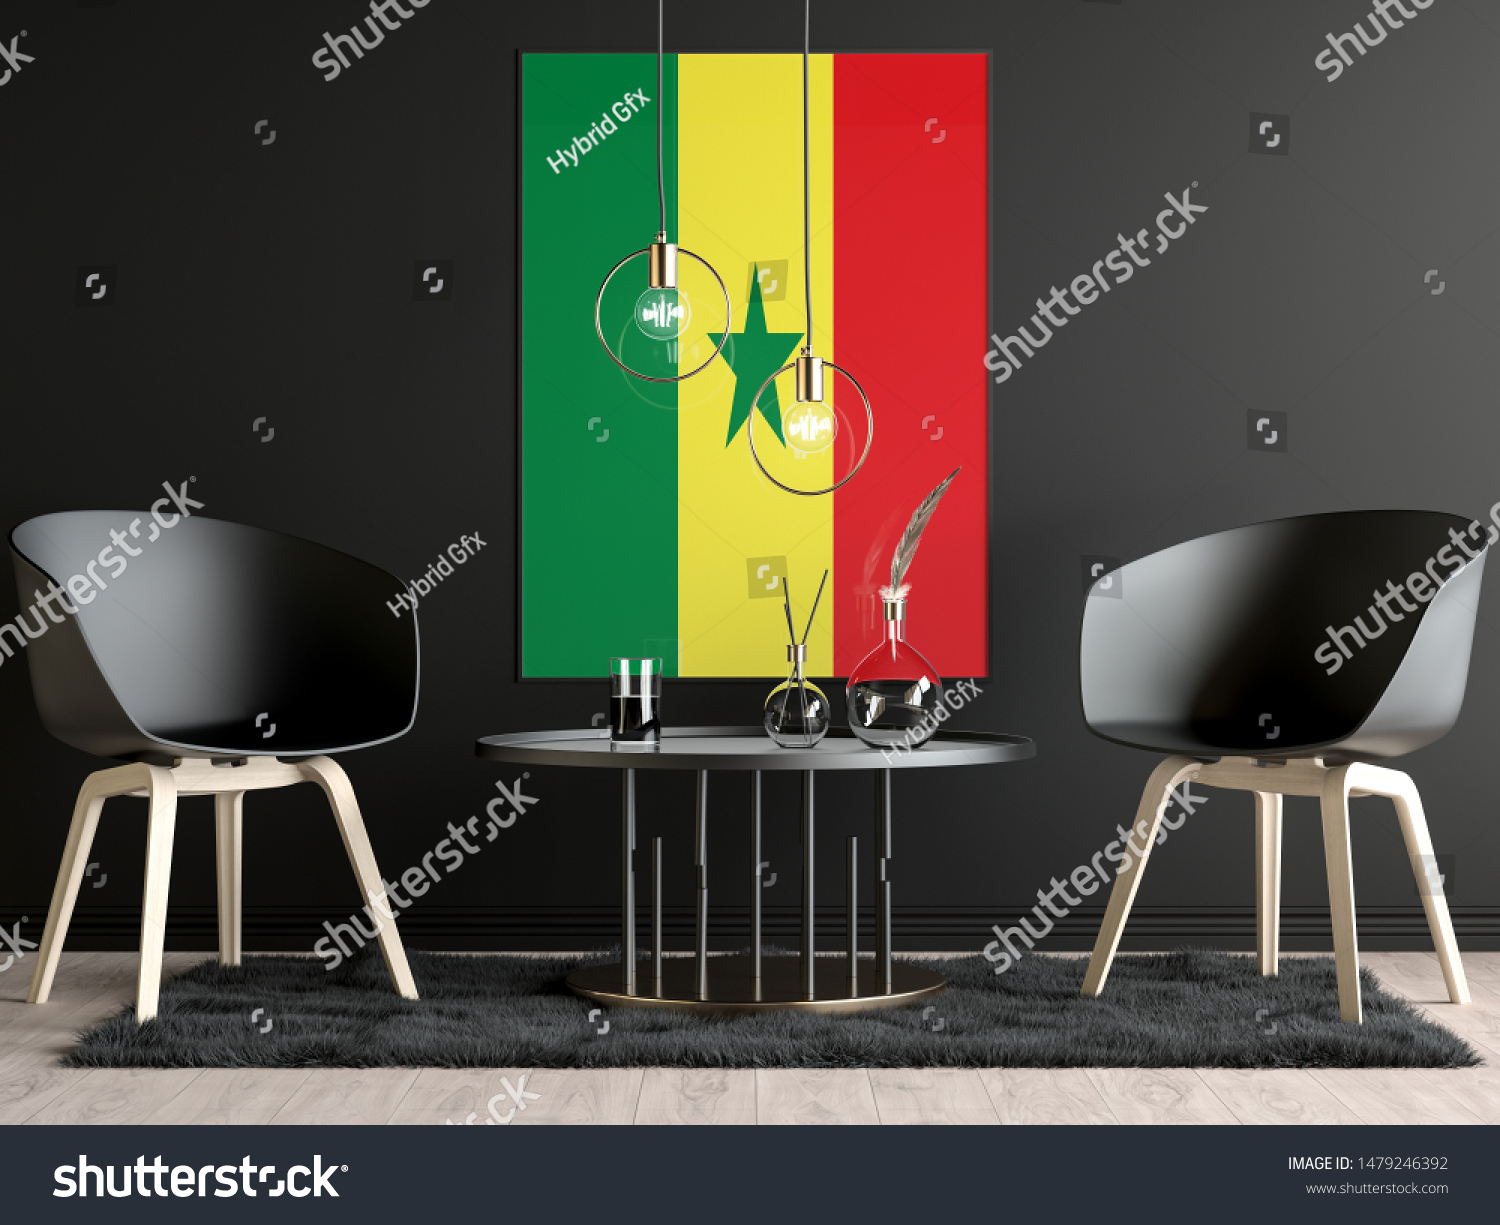 Senegal Flag in Room, Senegal Flag in Photo Frame #1479246392